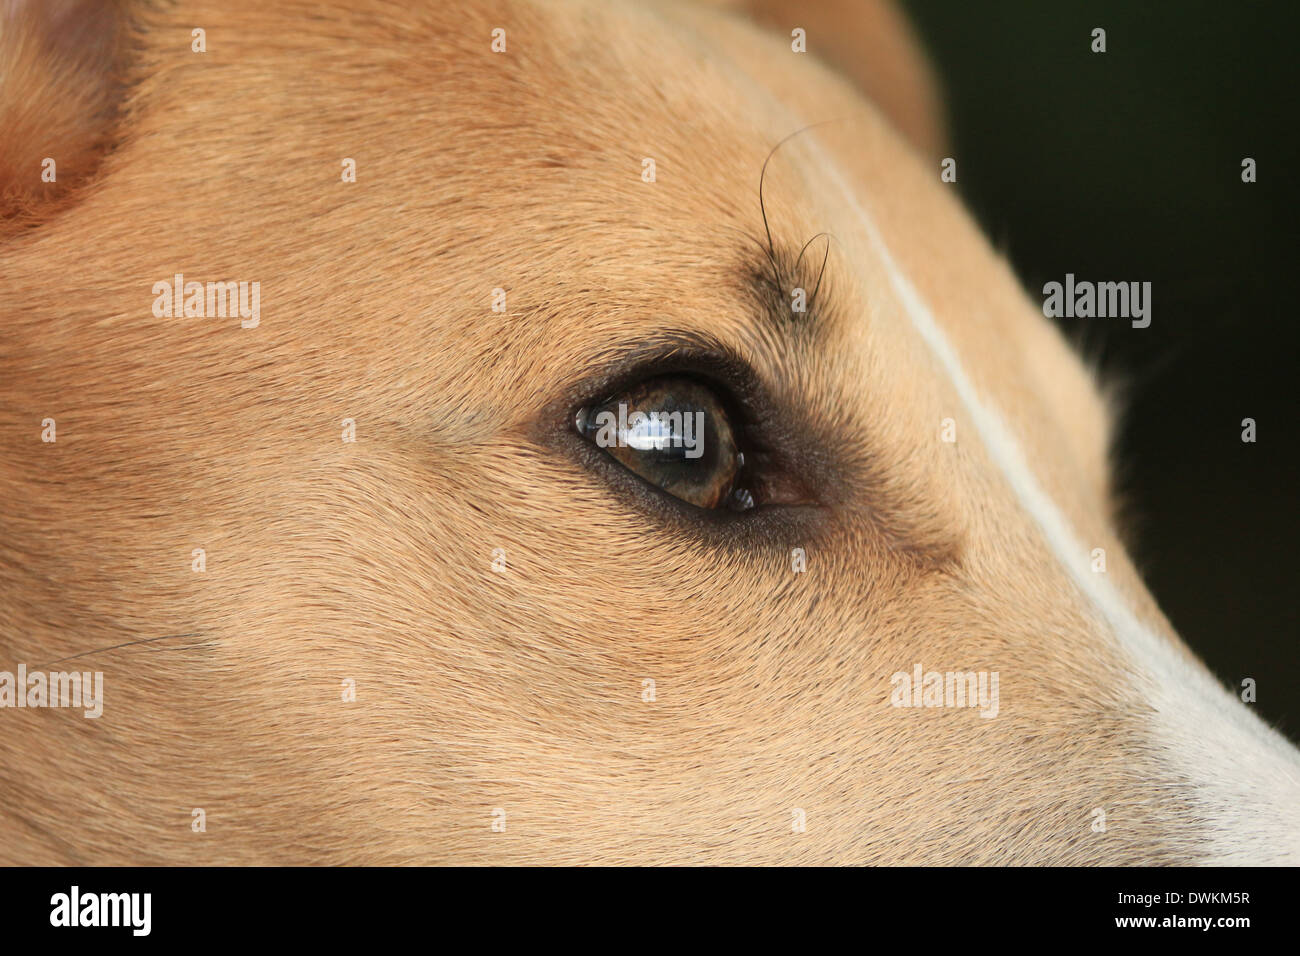 Eye of Whippet - Stock Image